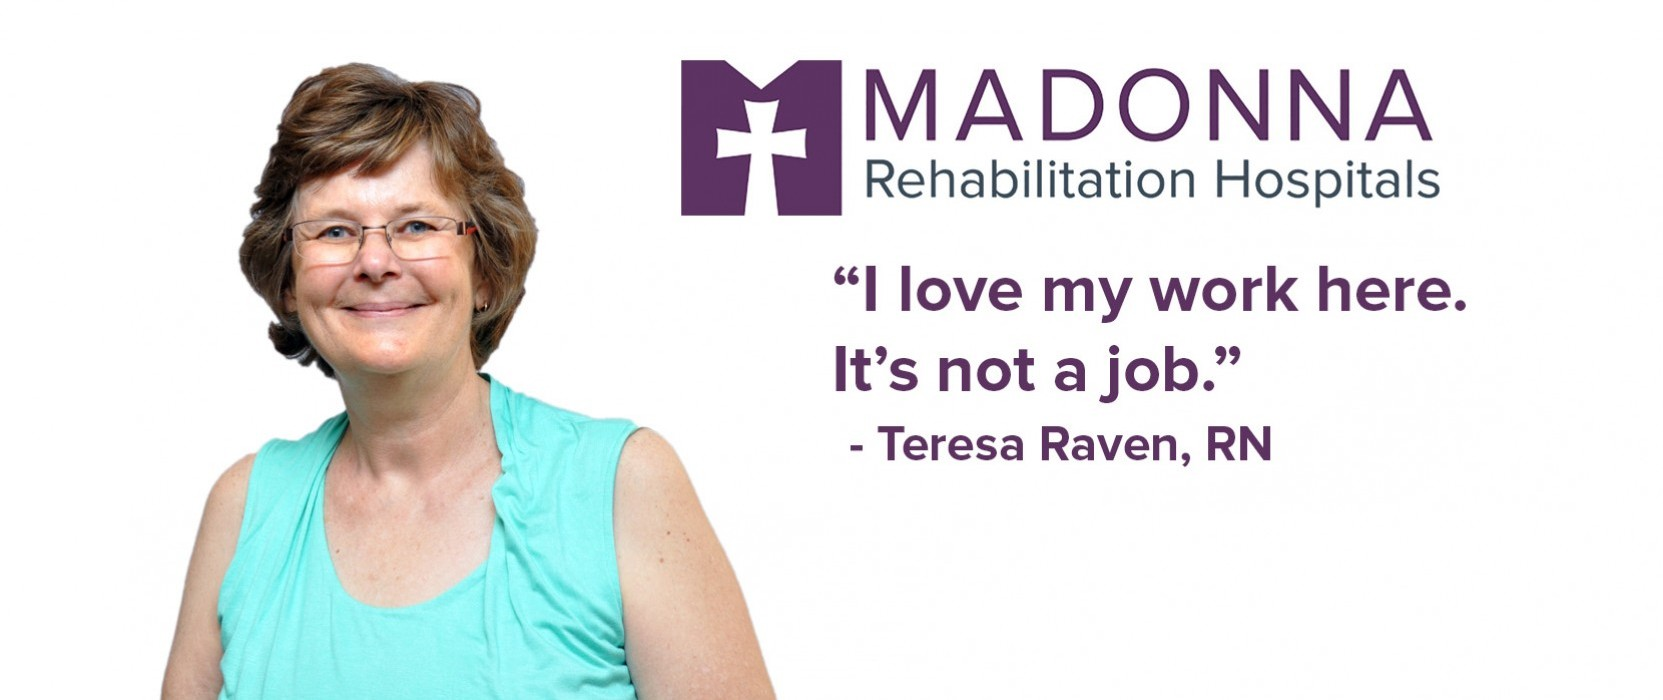 Rehabilitation nurses change lives